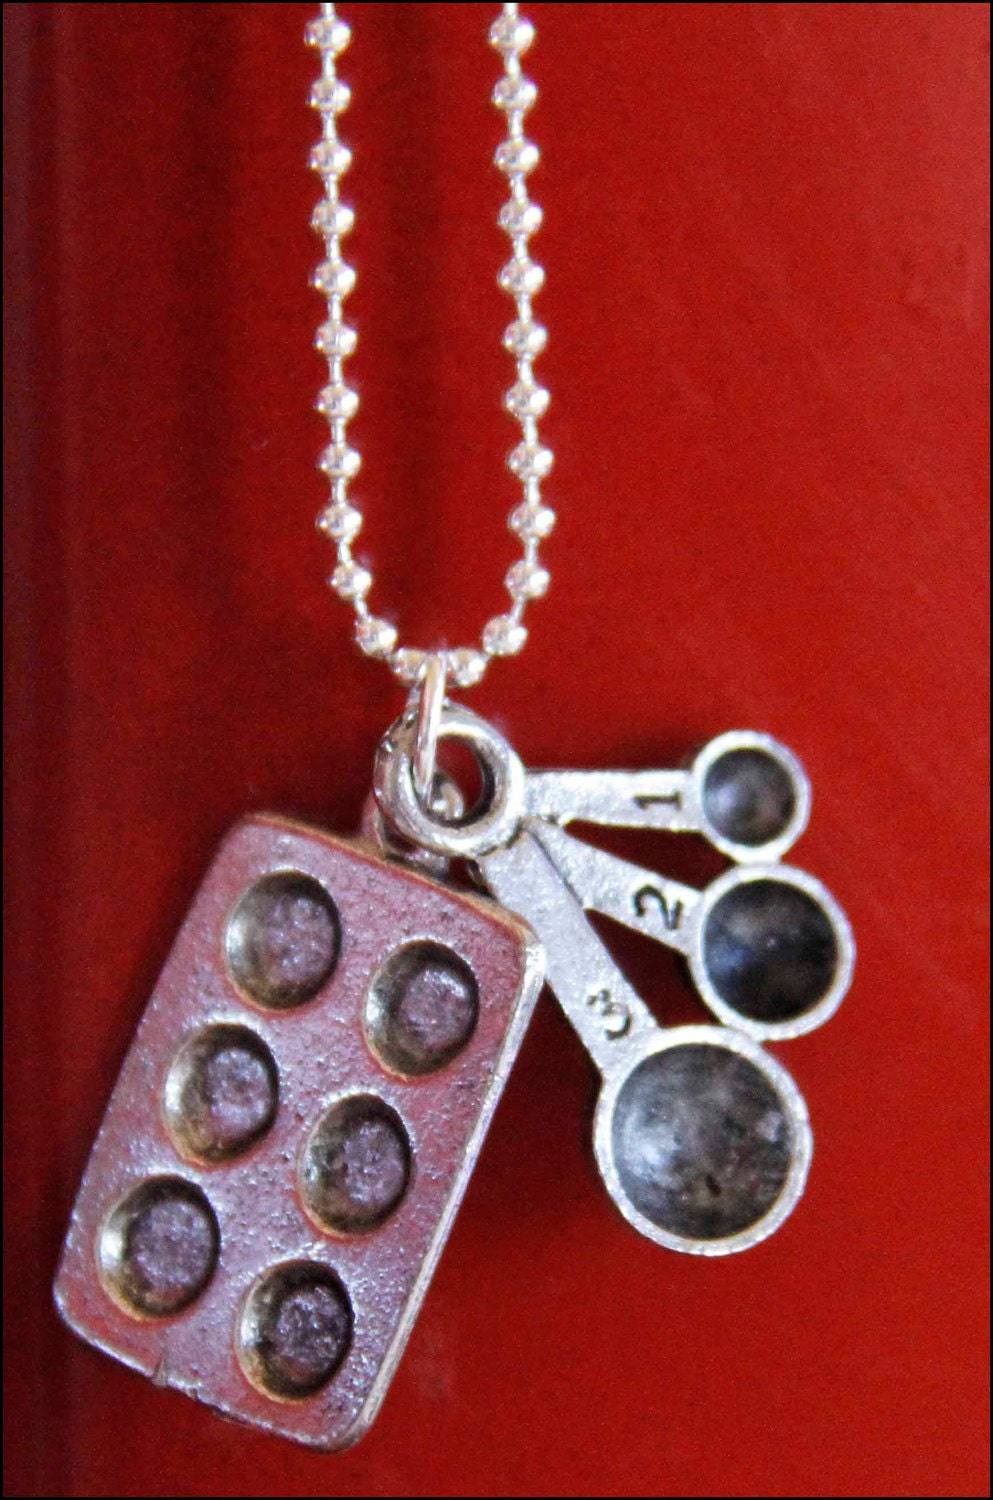 Charm Pendant - Muffin Tin and Spoons